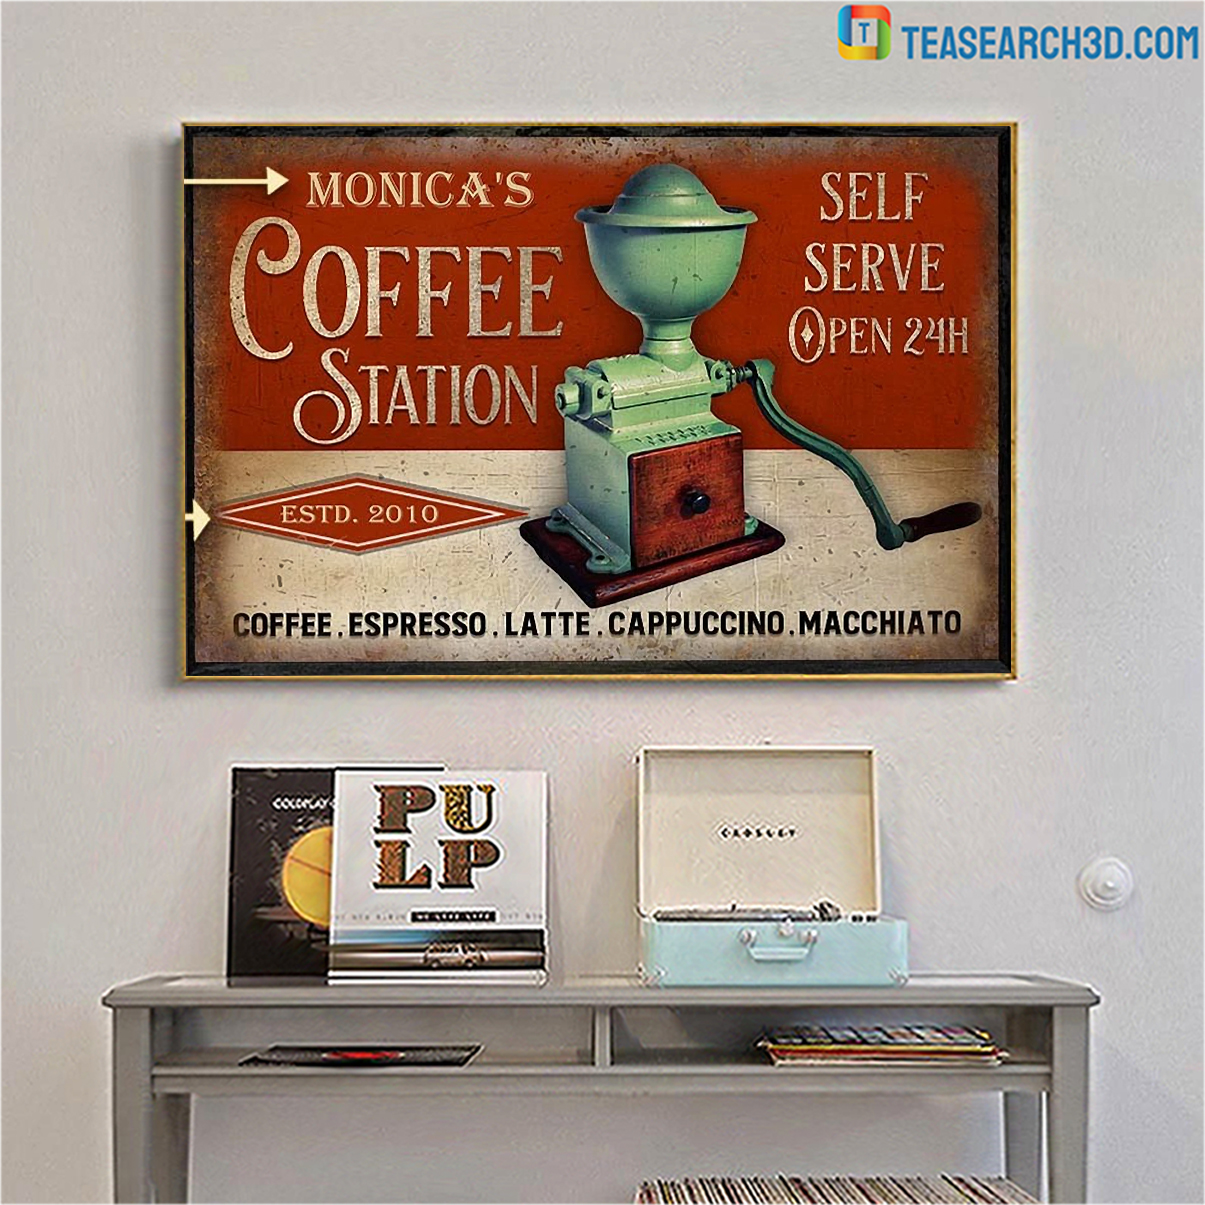 Personalized custom name coffee station self serve poster A4